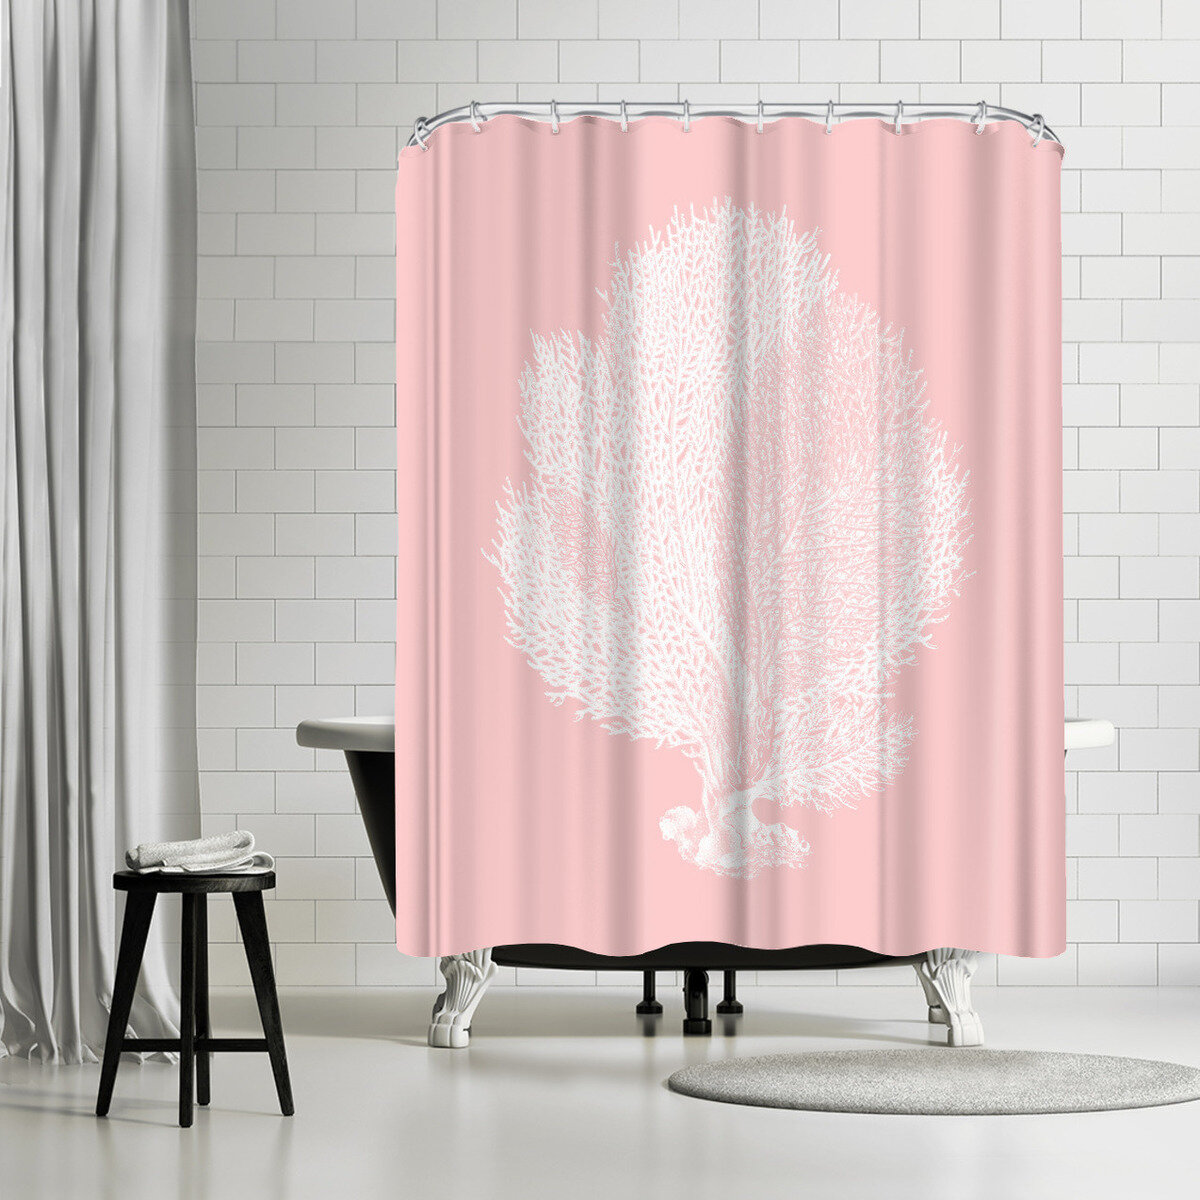 East Urban Home Adams Ale Mil Pink Seafn Coral Shower Curtain